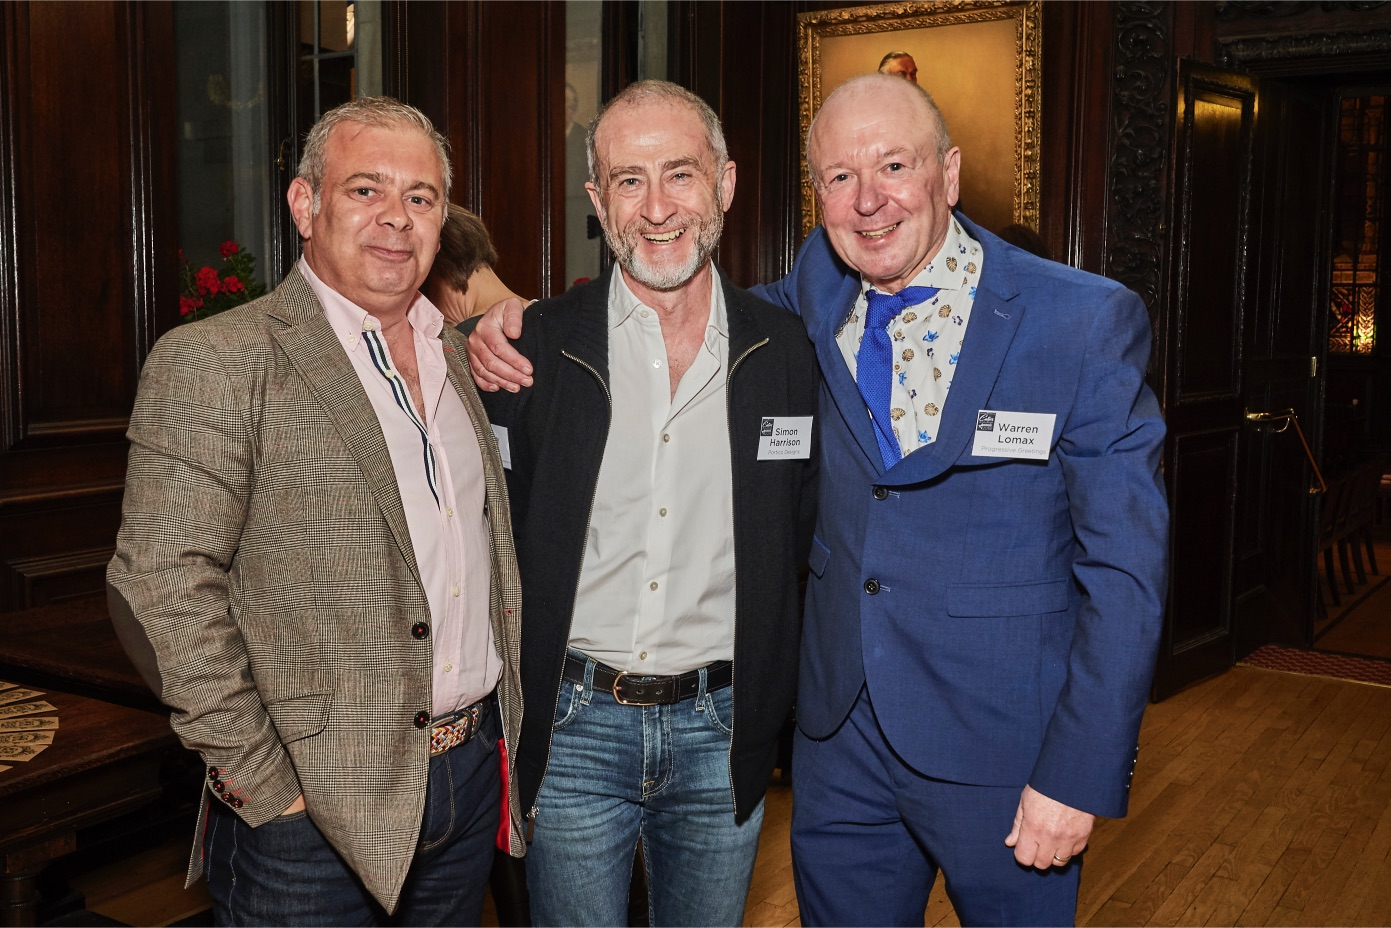 Above: Three wise men?! (Left-right) Miles Robinson (House of Cards). Simon Harrison (Portico Designs) and Warren Lomax (Max Publishing).